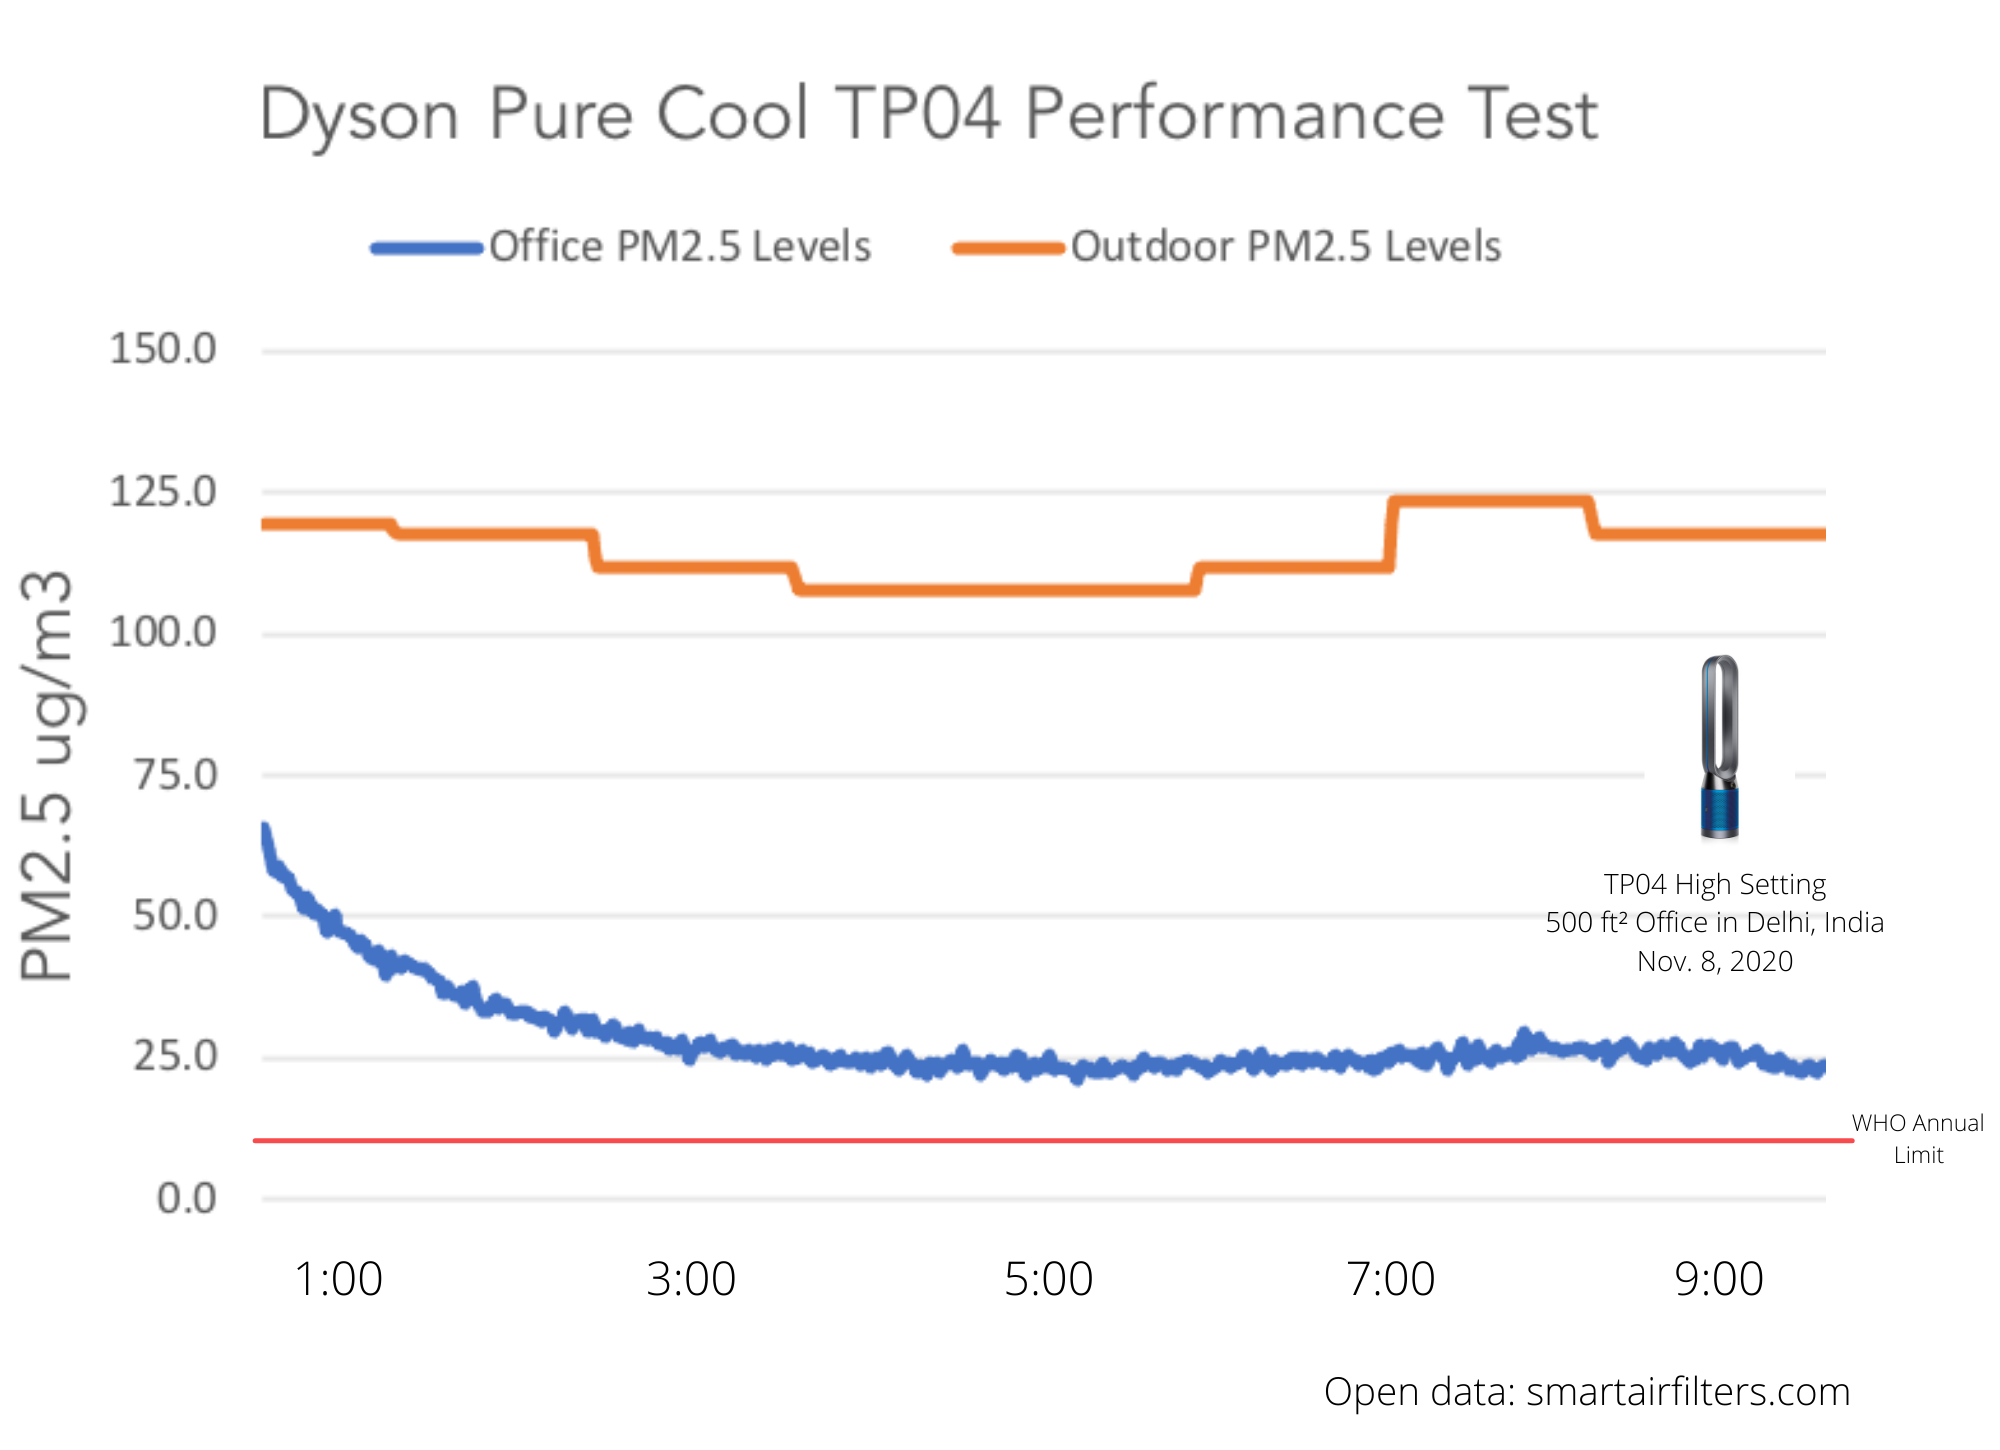 Dyson Pure Cool TP04 Performance Test